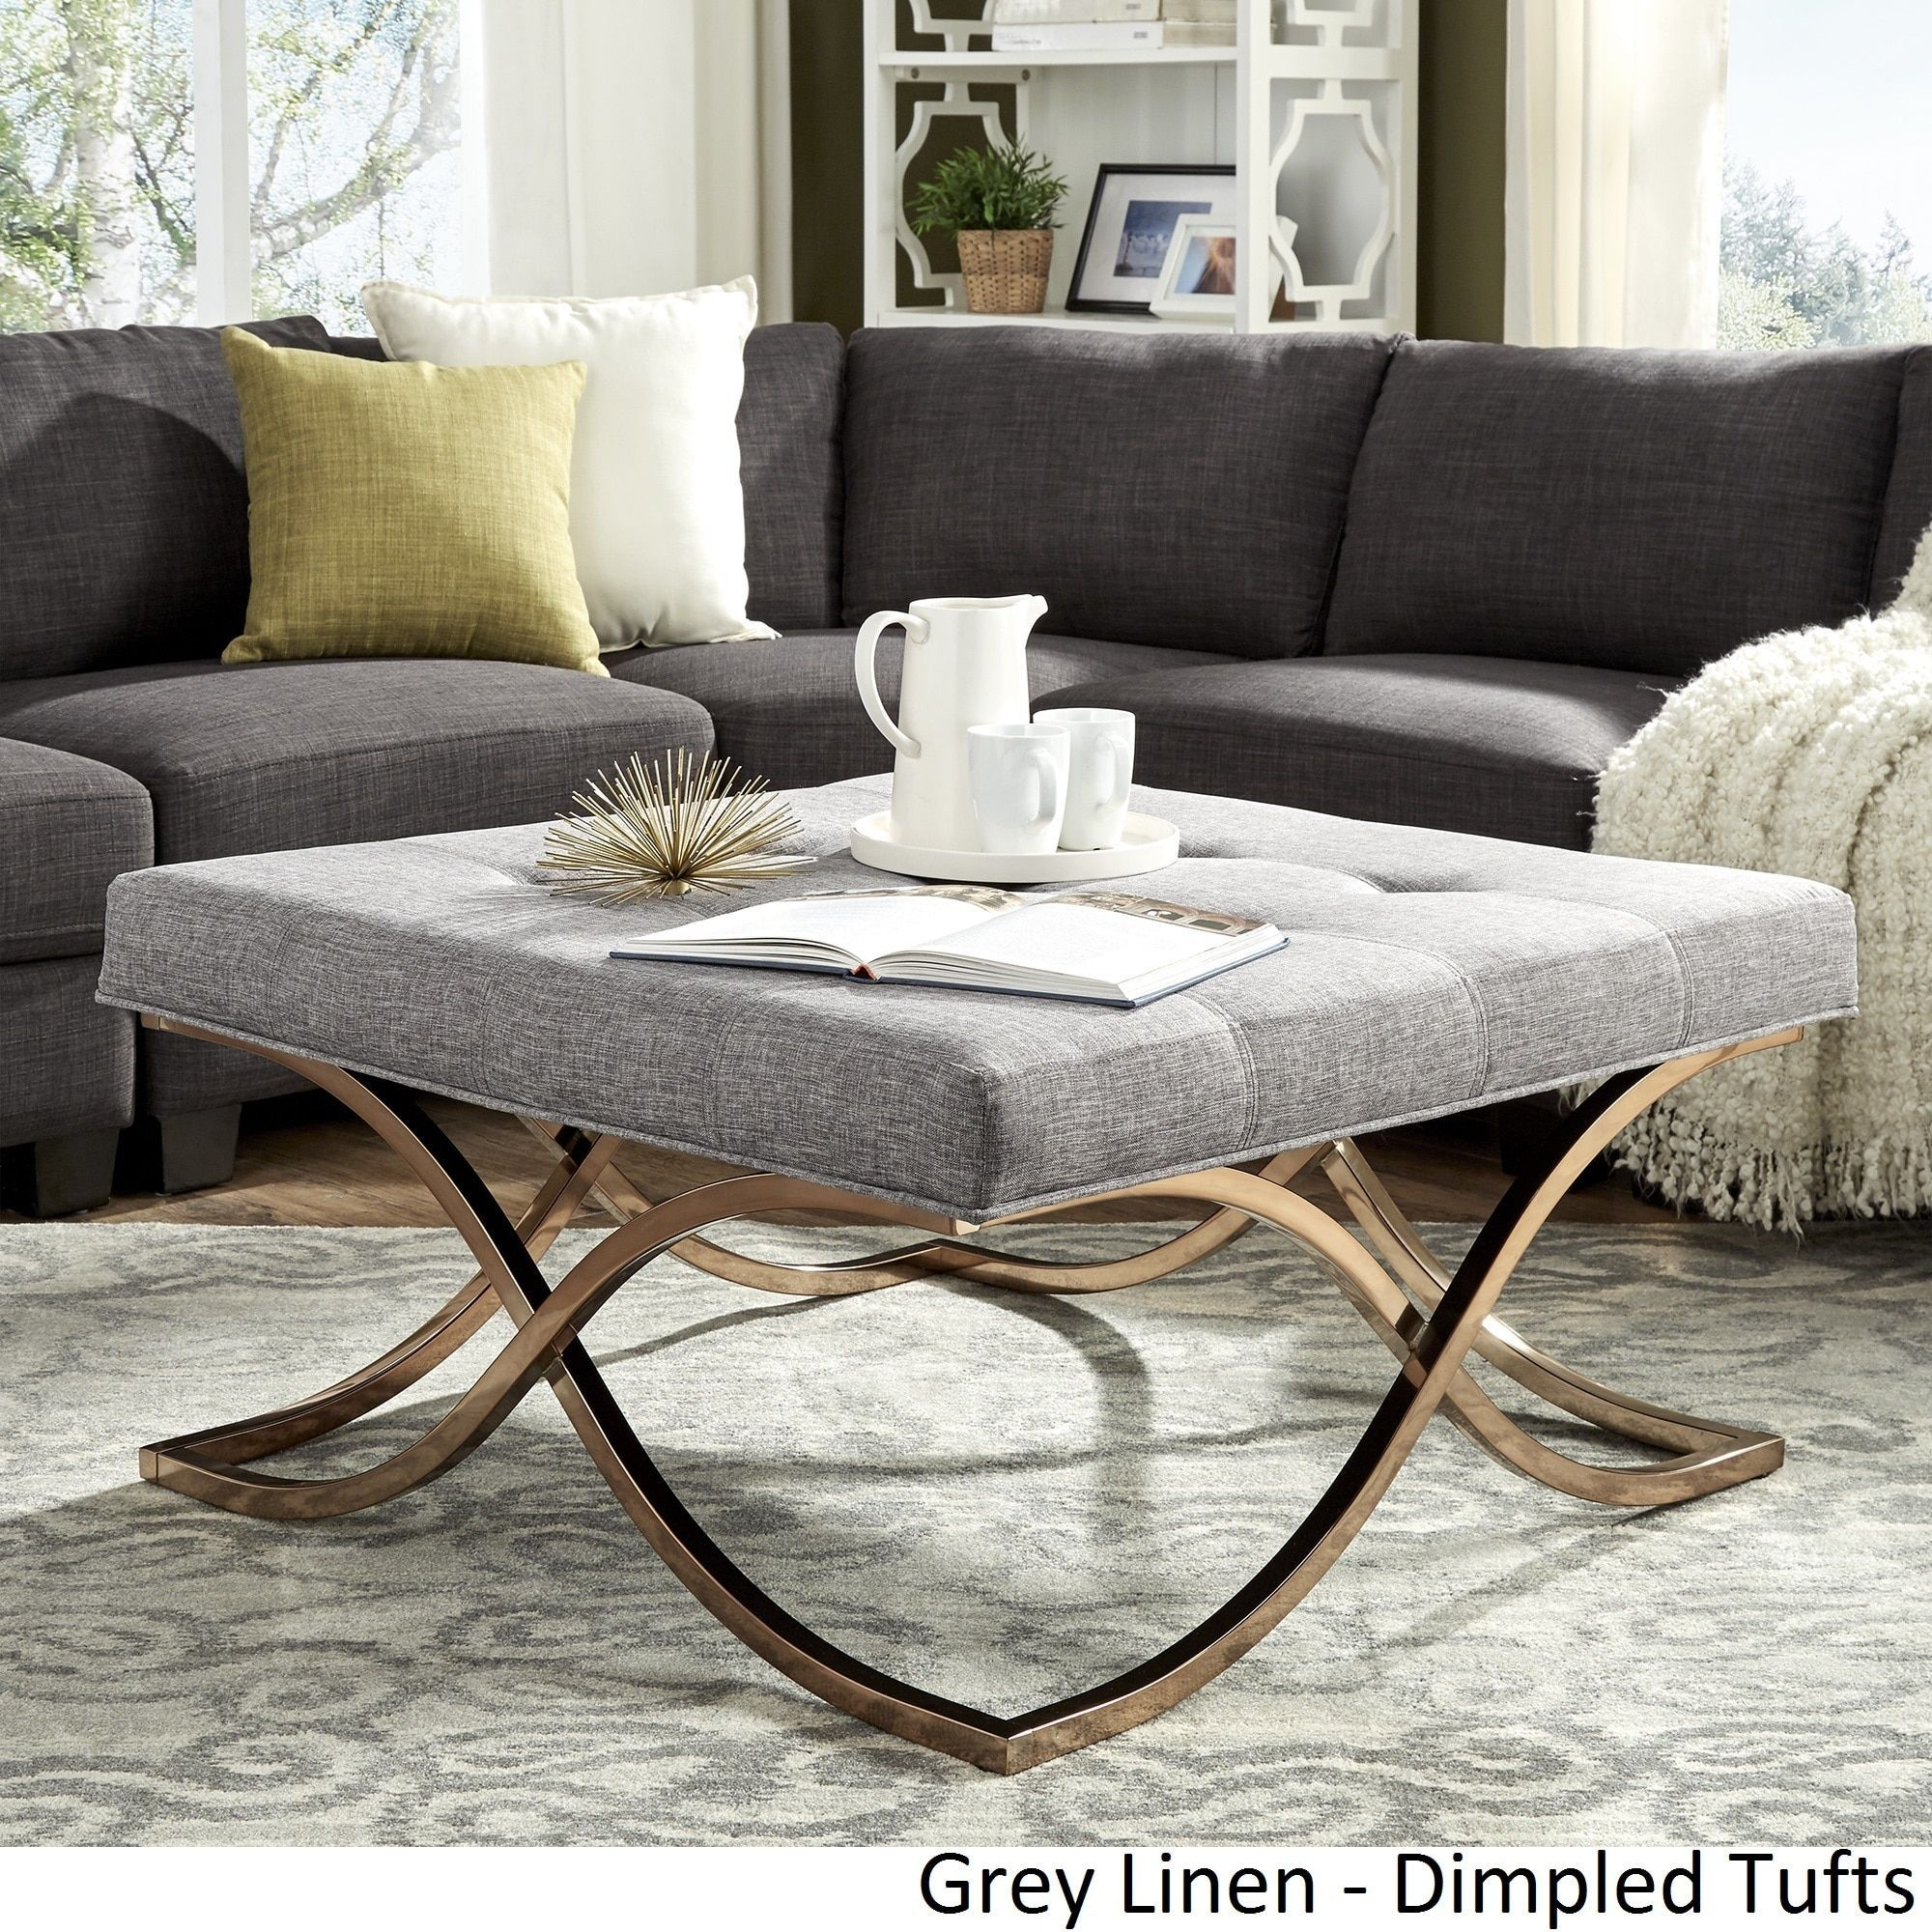 Solene X Base Square Ottoman Coffee Table - Champagne Gold by Inspire Q  ([Dark Brown PU]- Dimpled Tufts)